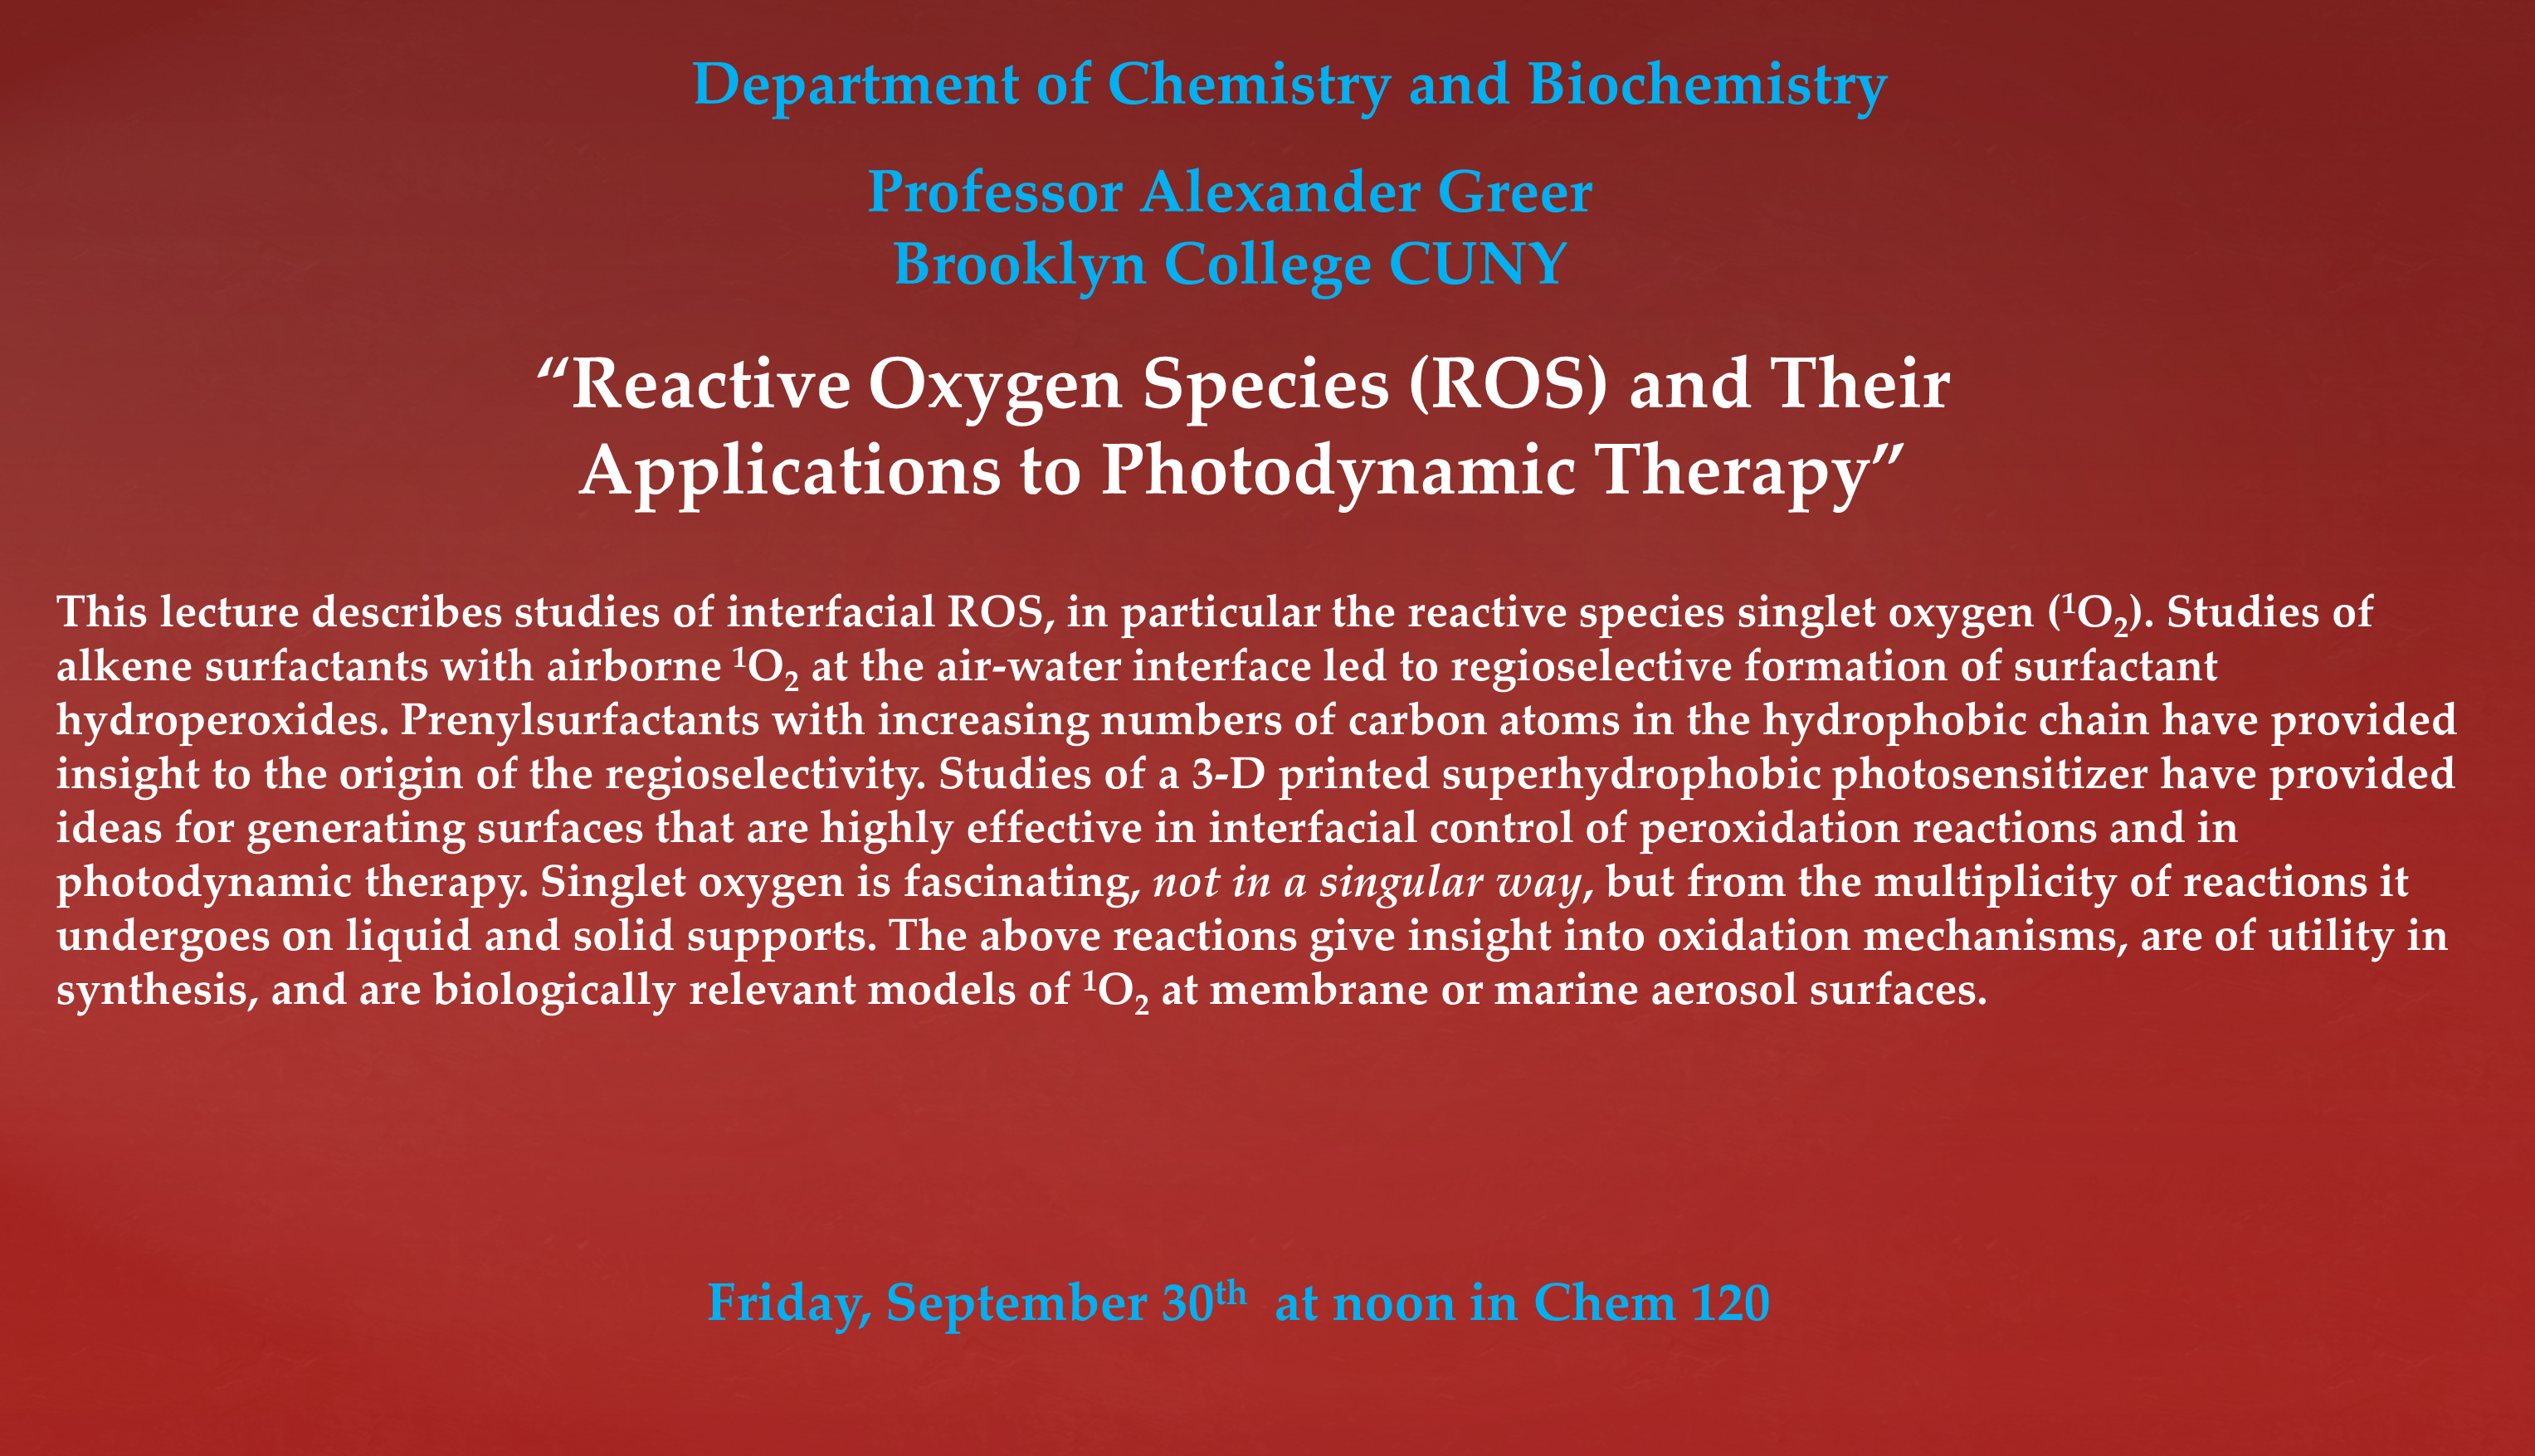 reactive oxygen species ros and their applications to related articles